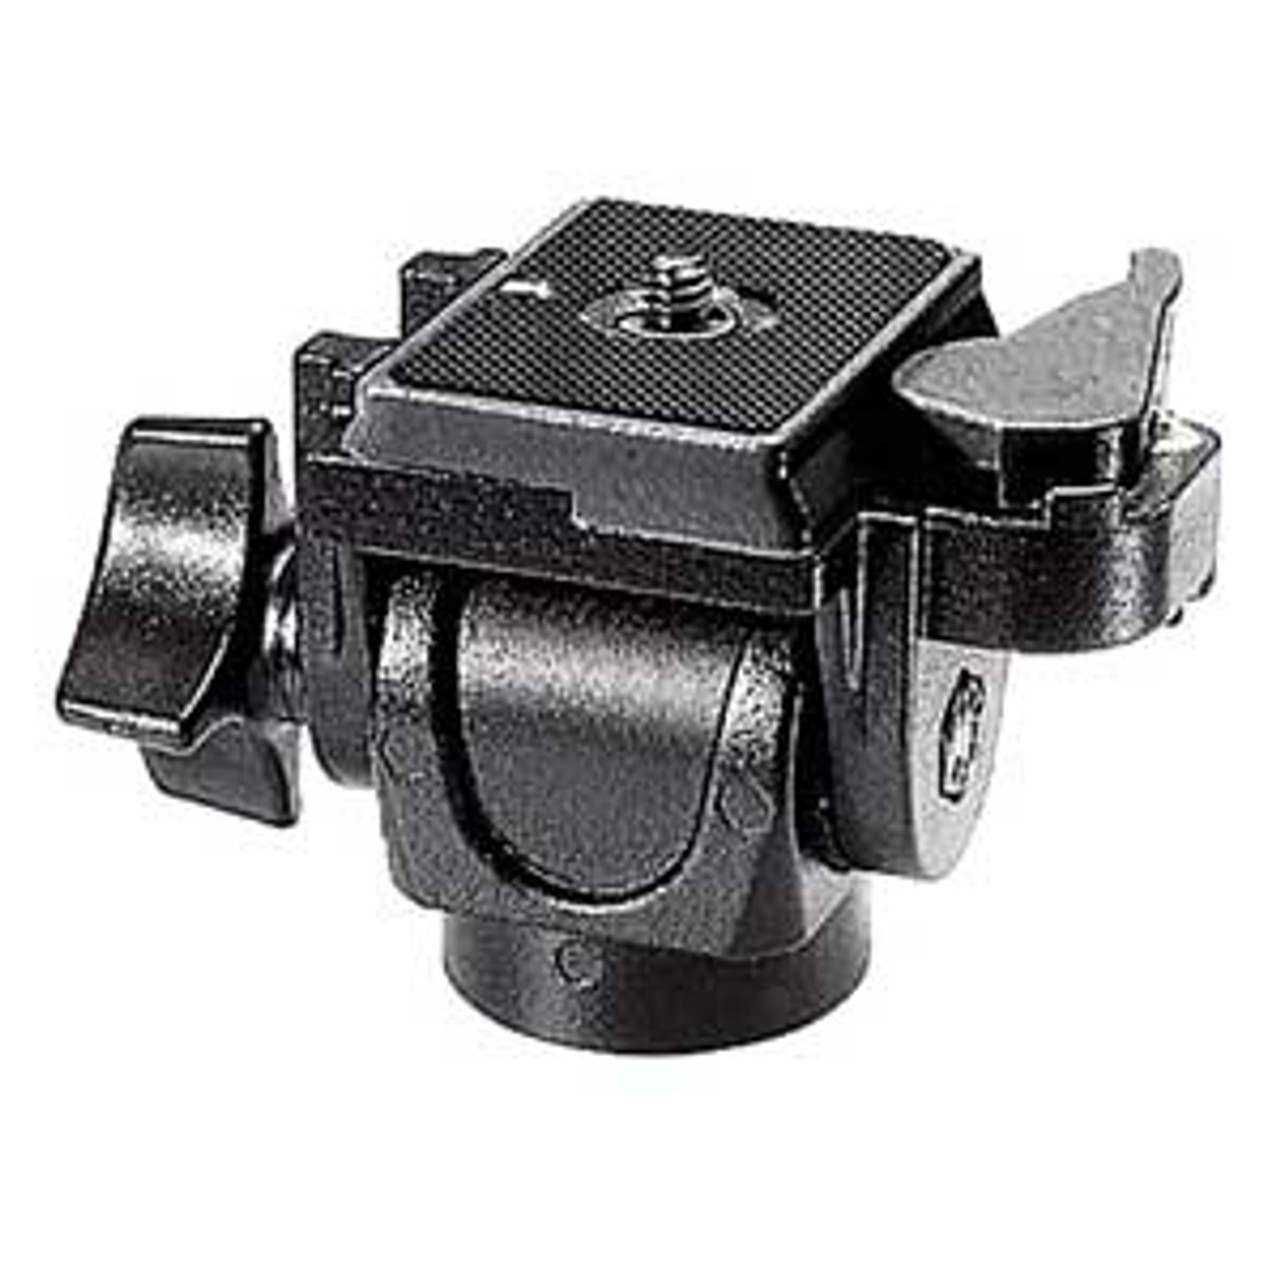 Manfrotto 234RC Head and Quick Release